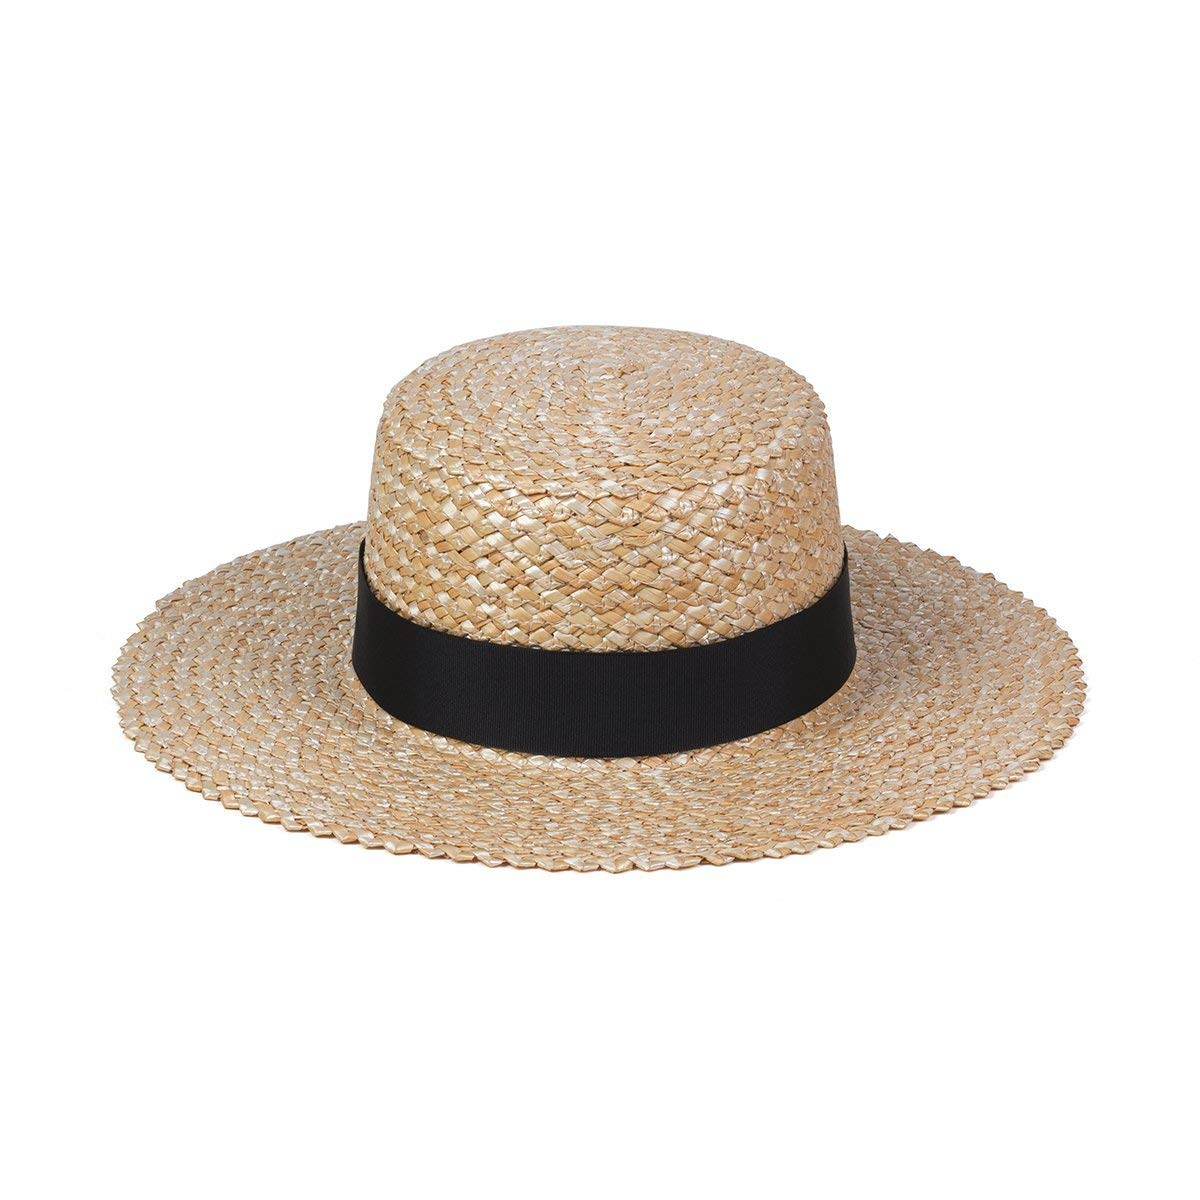 Lack of Color Women's Rico Straw Boater Sun Hat (Natural, Medium (57 cm))